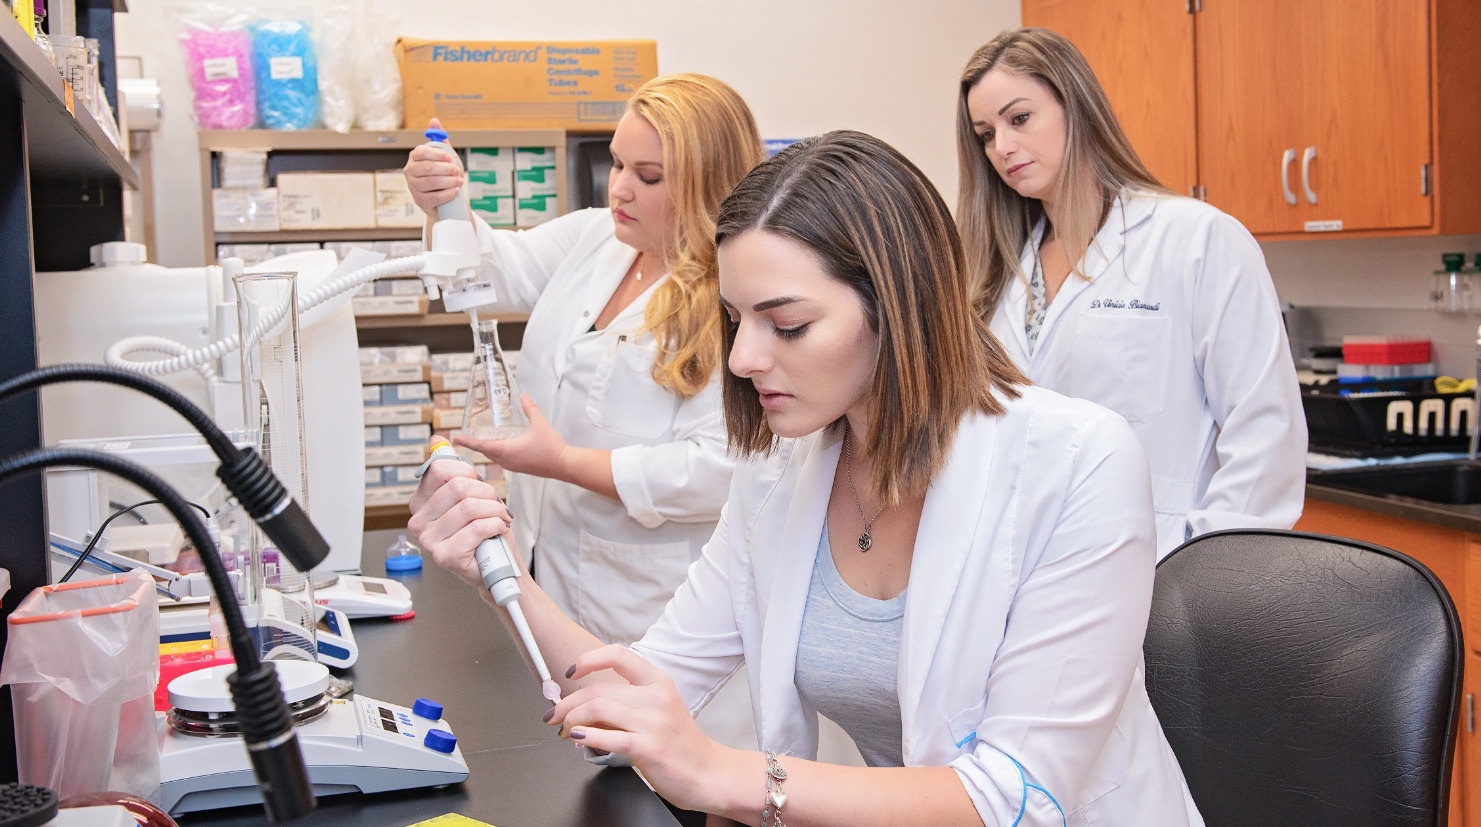 (Left to Right) Sarah Padean, Francesca Mowry, and Dr. Vinicia Biancardi in the lab.